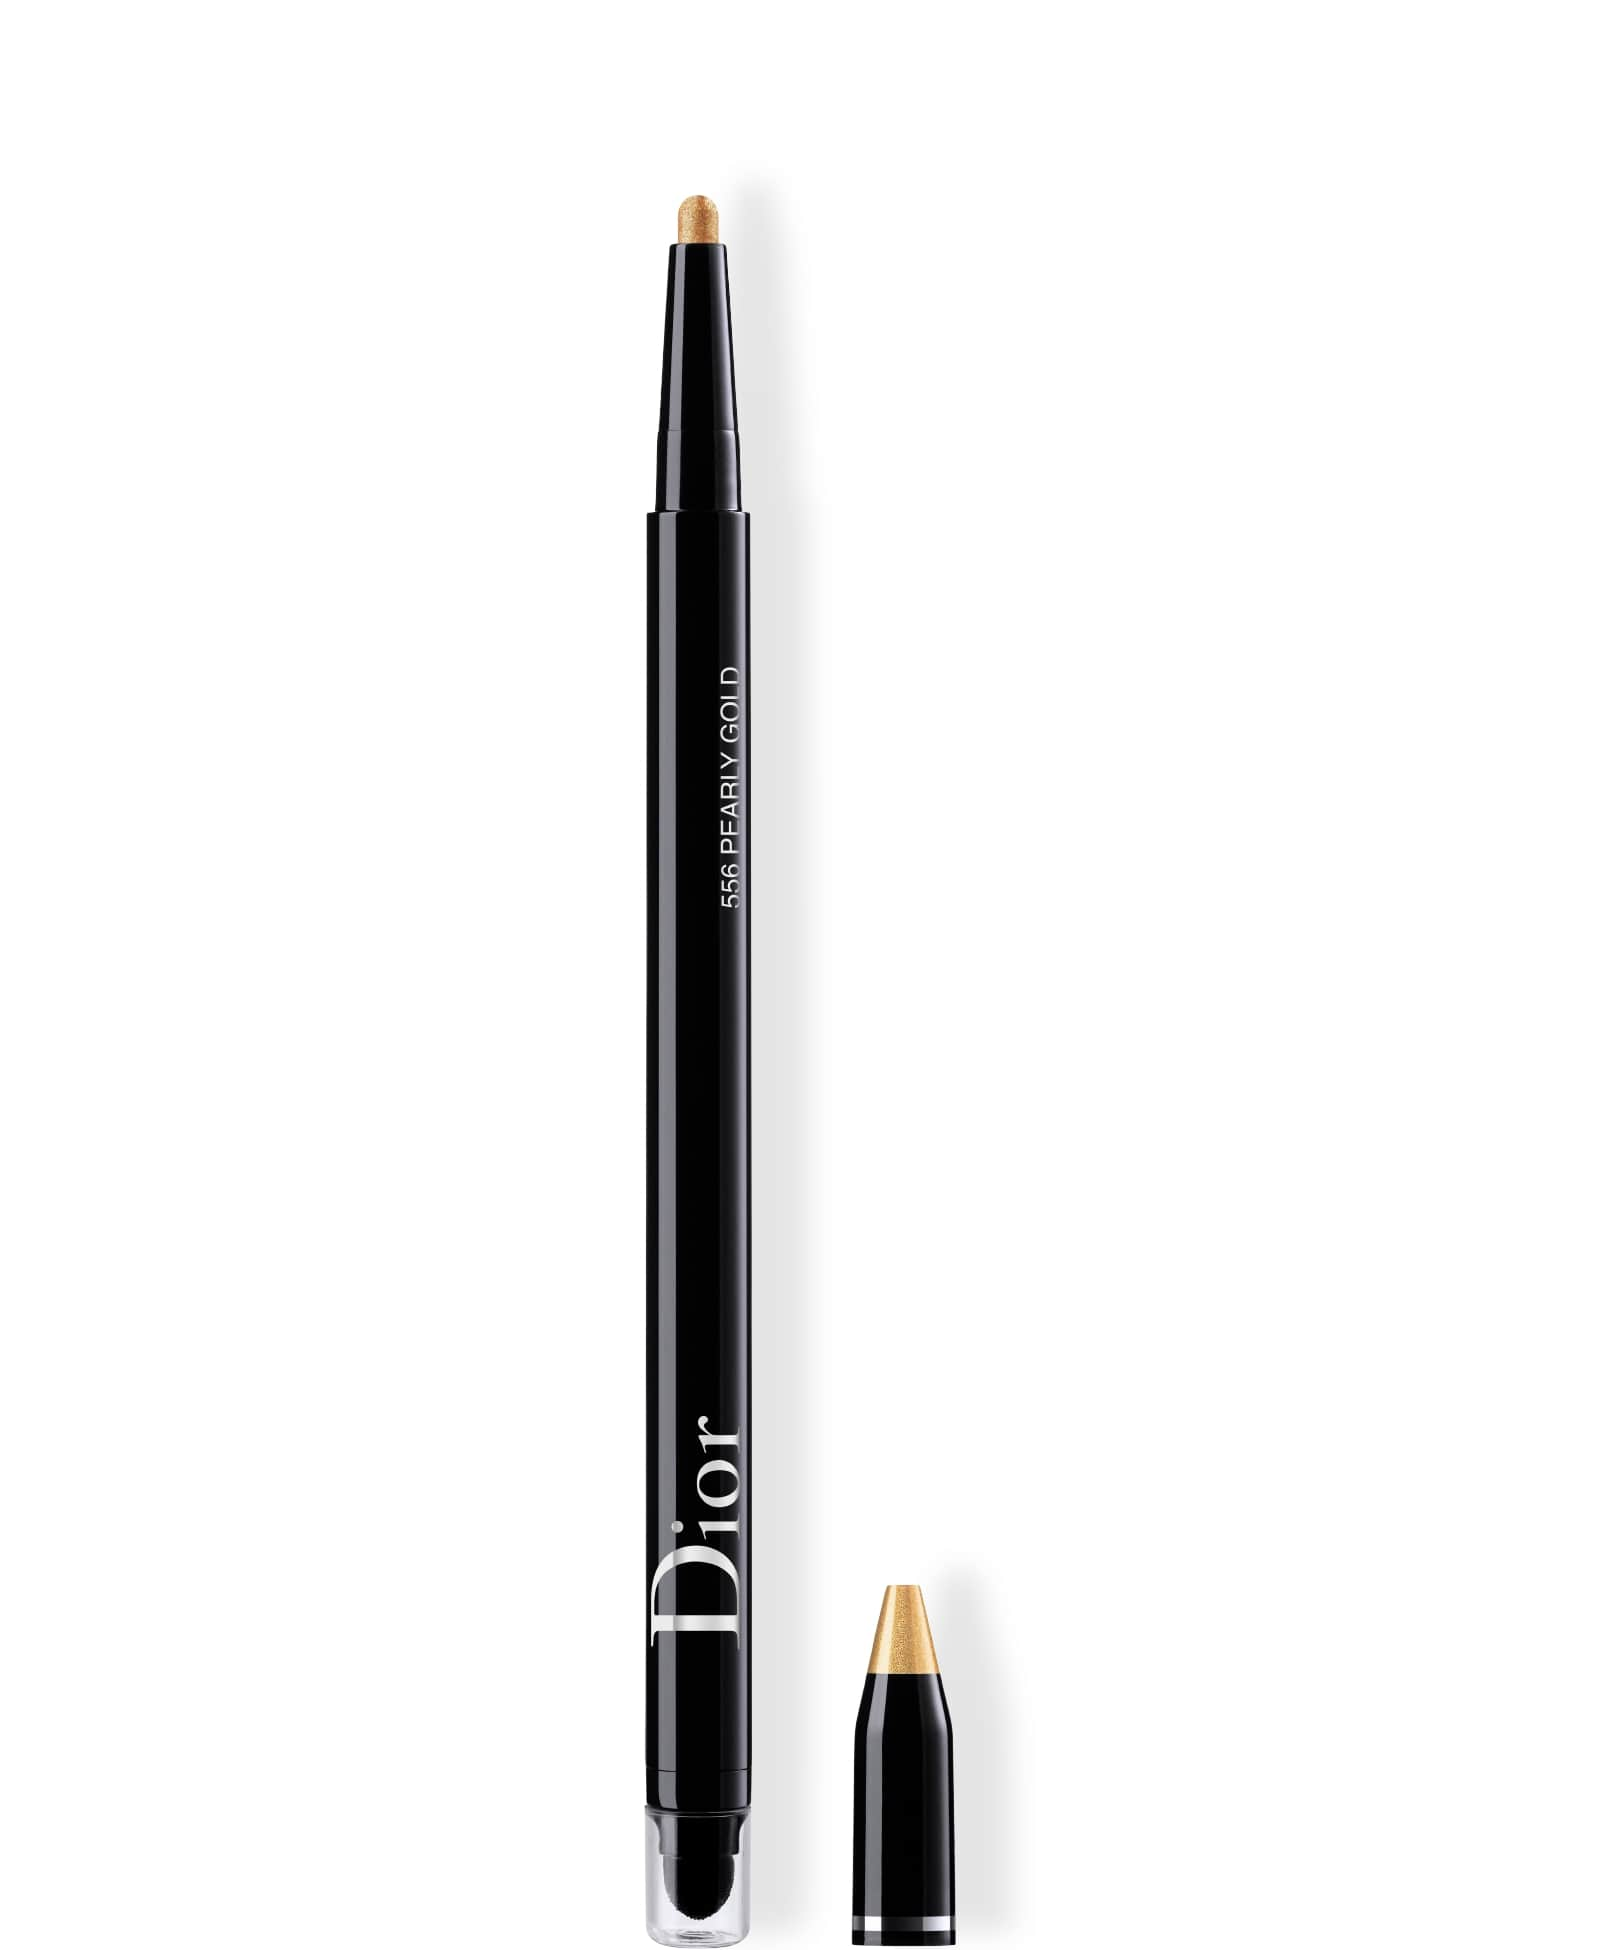 DIOR Diorshow 24H Stylo Pencil, 566 pearly gold